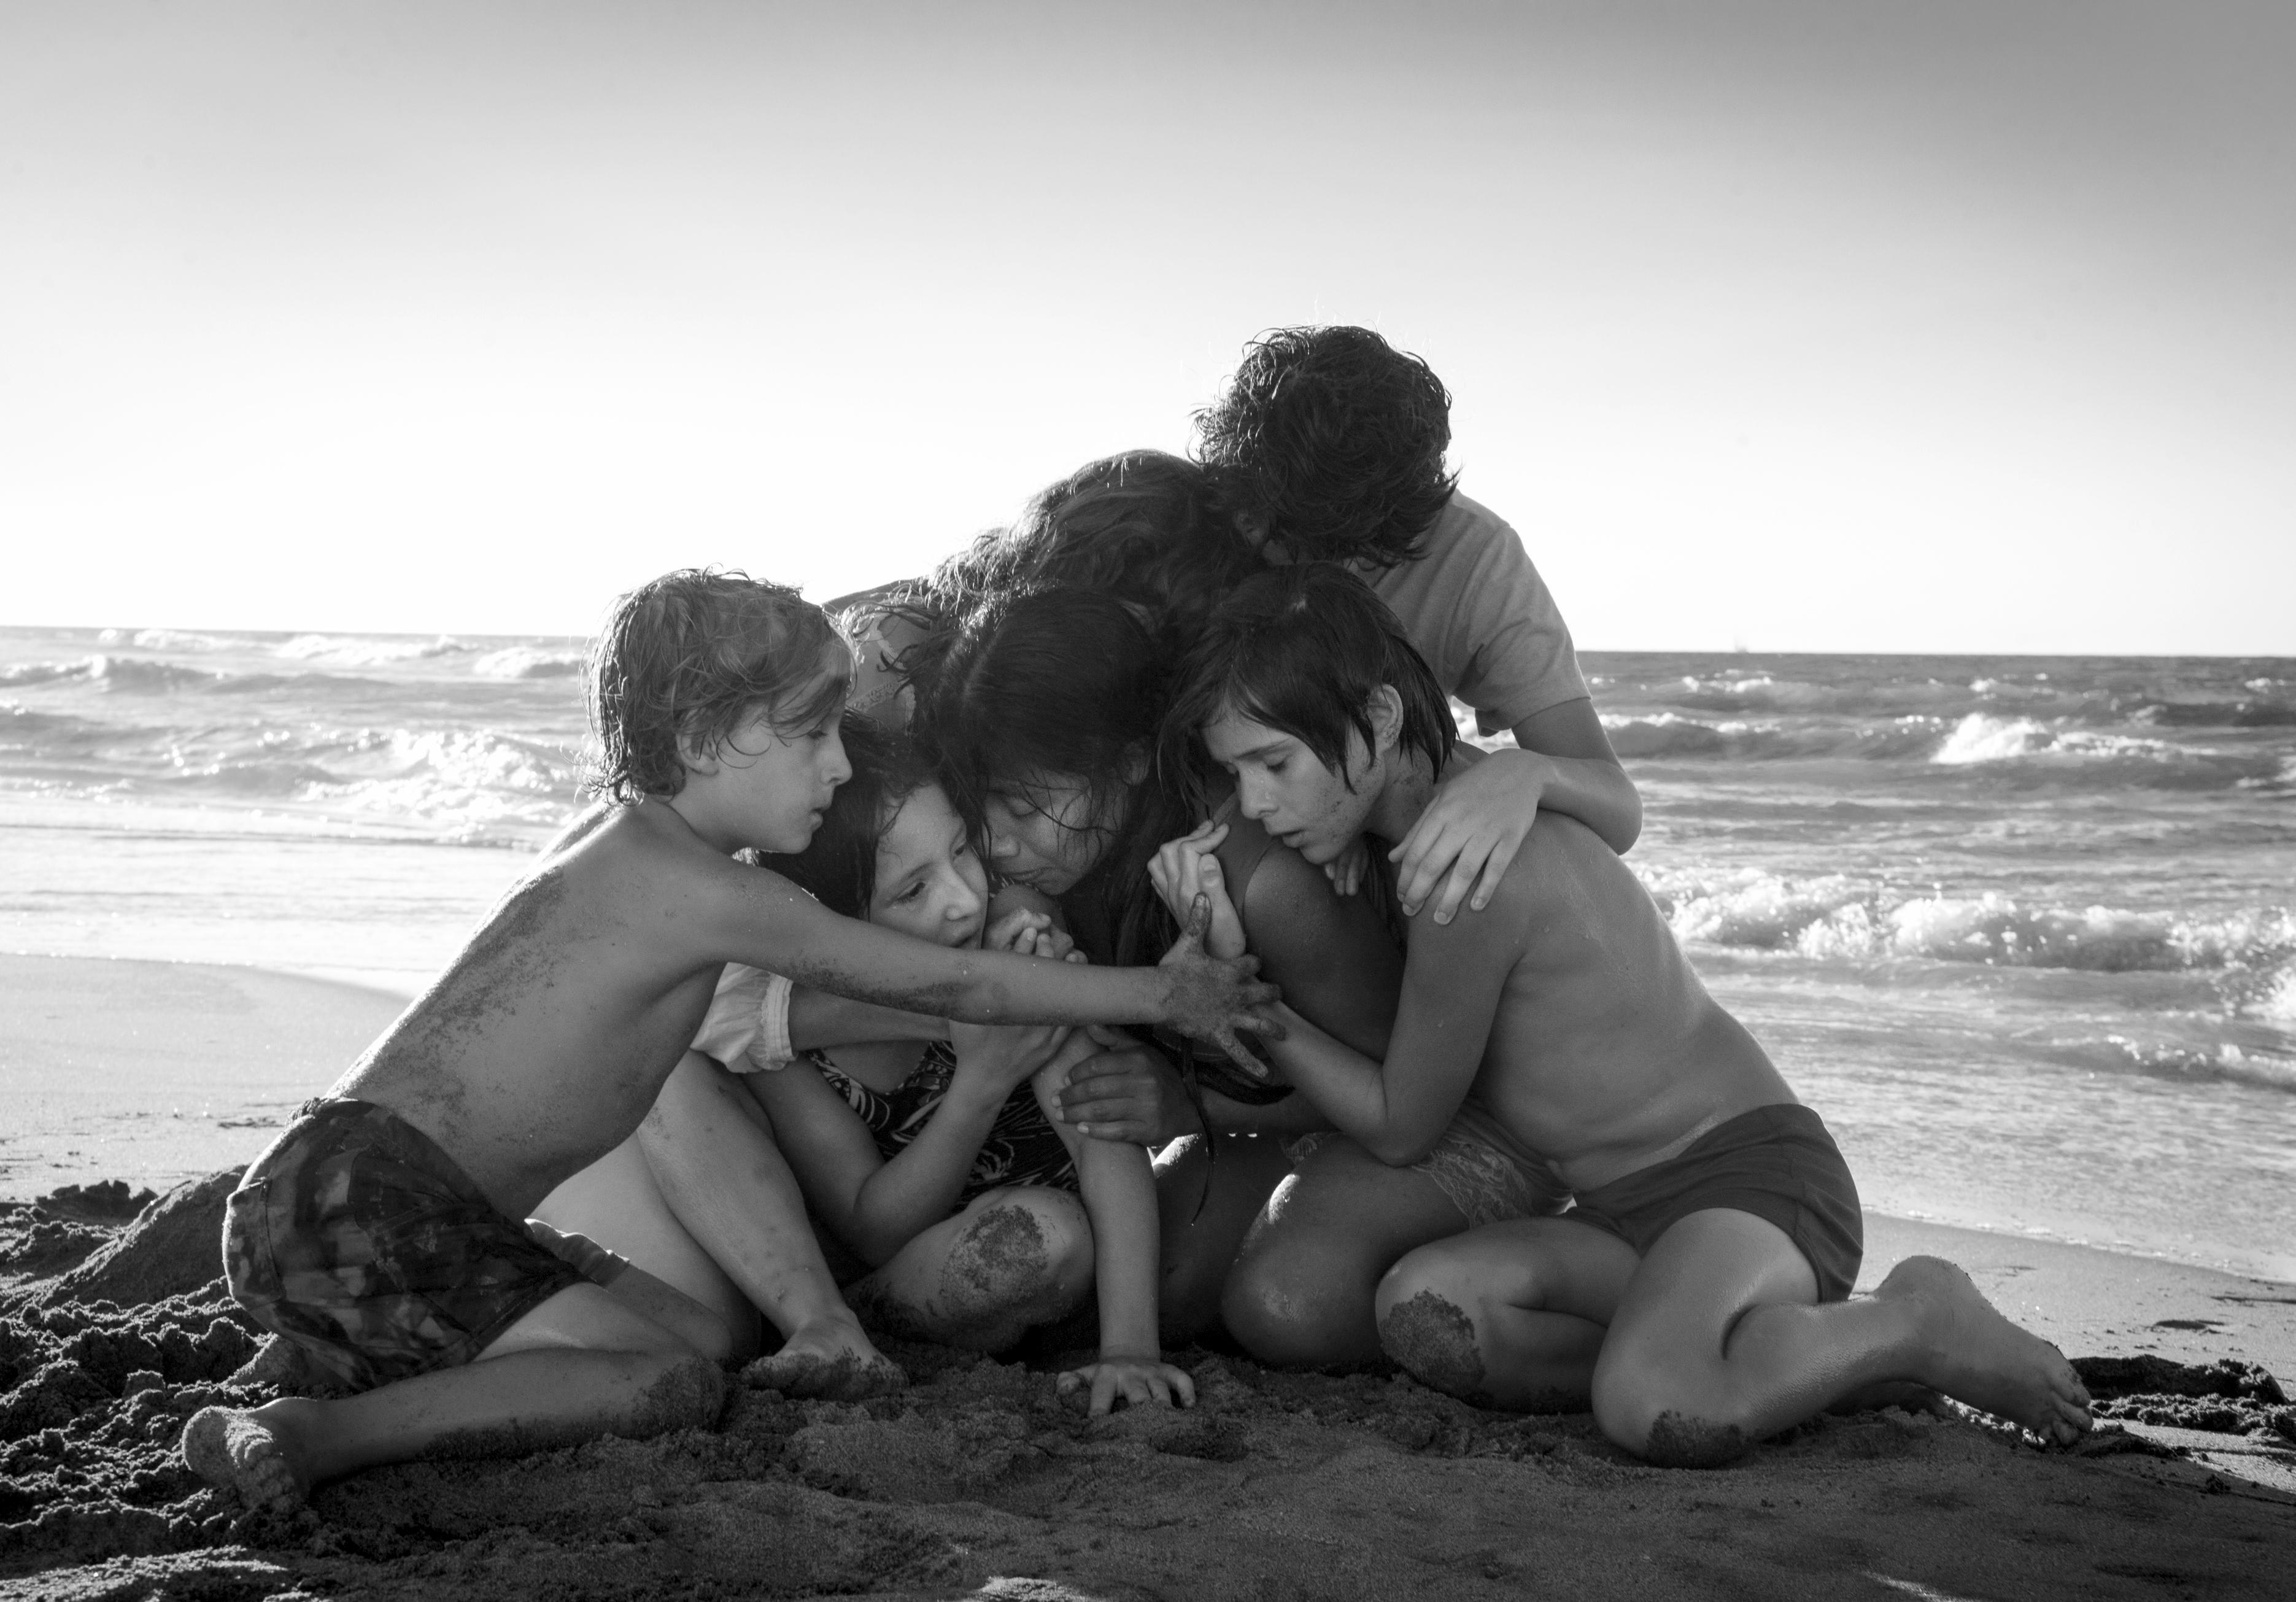 Roma is exquisitely shot and one of the most beautiful films you'll watch